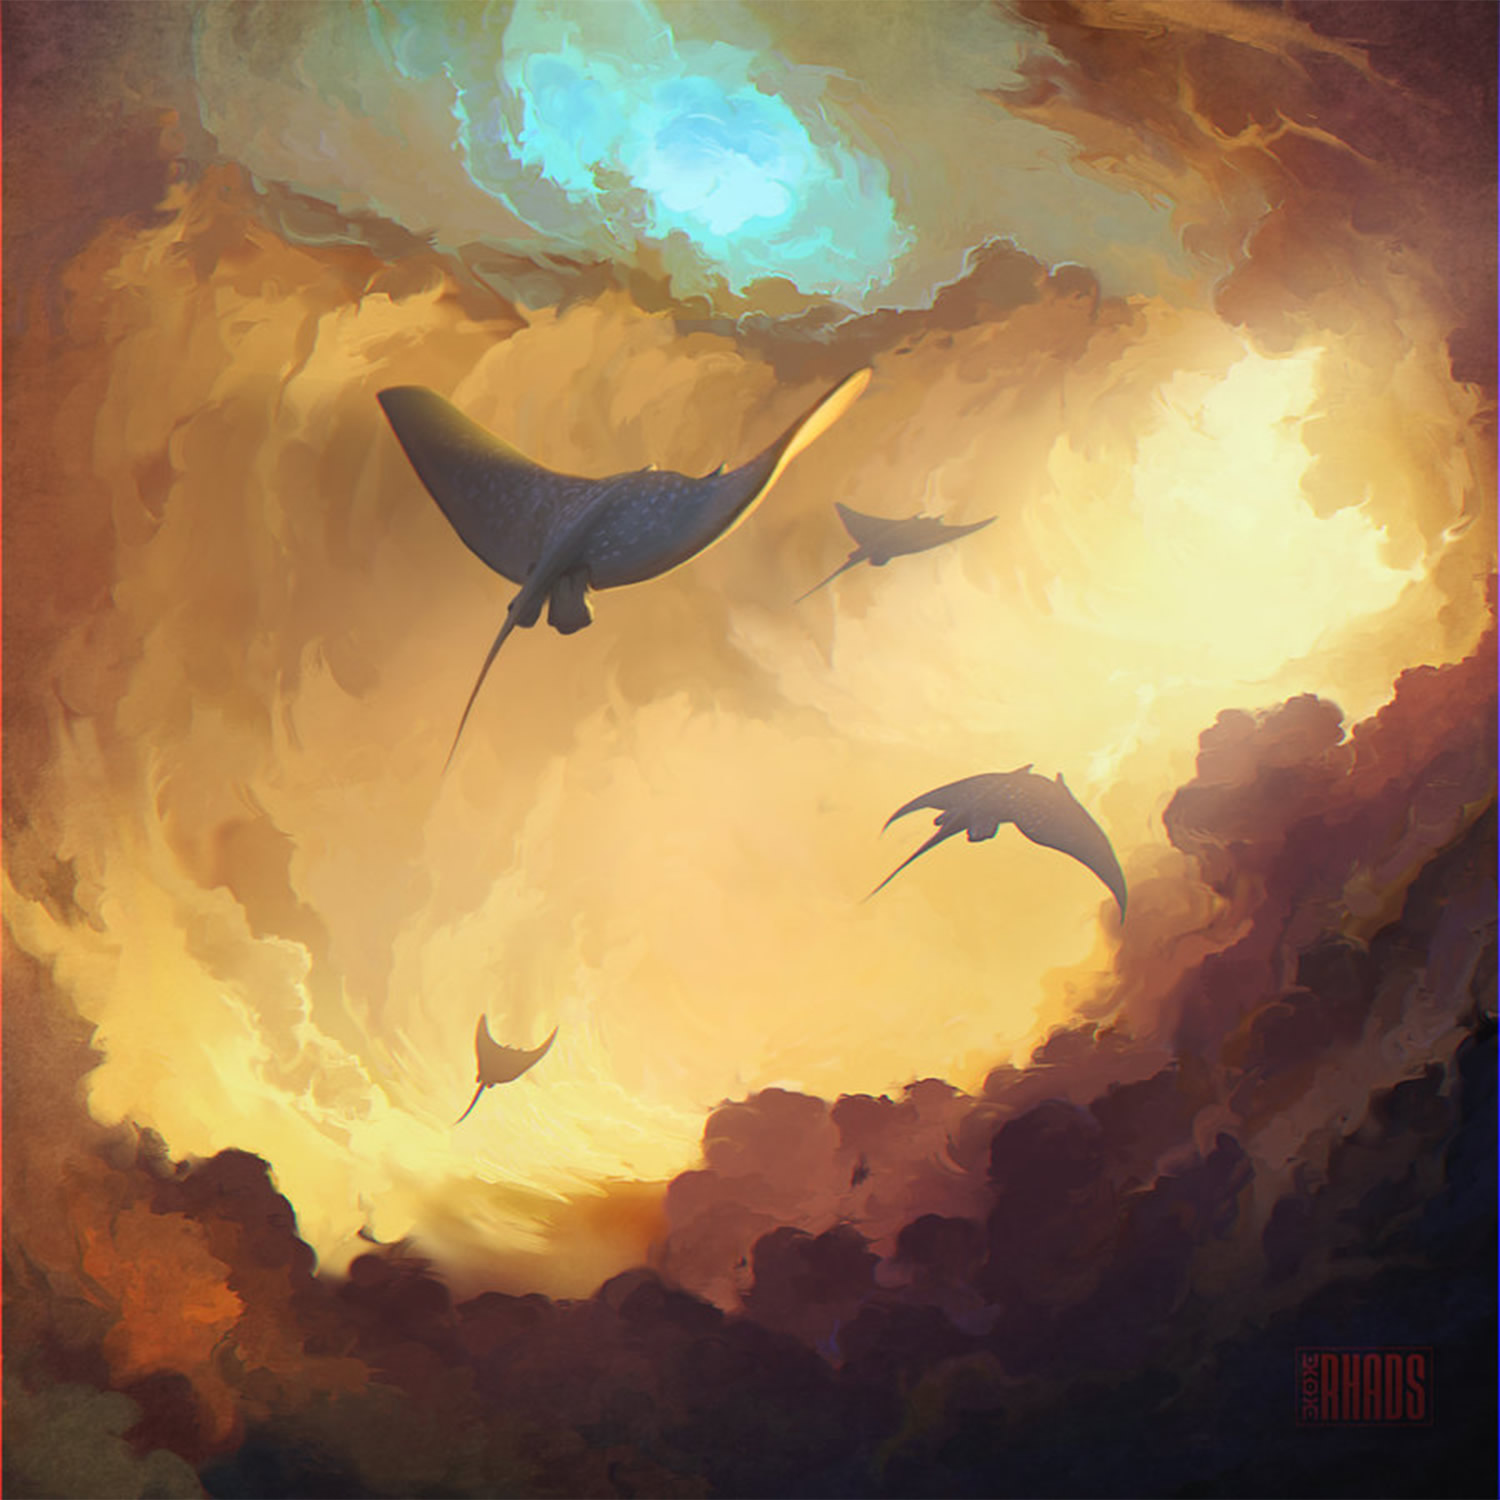 endless journey, digital art by rhads, sting rays flying in clouds